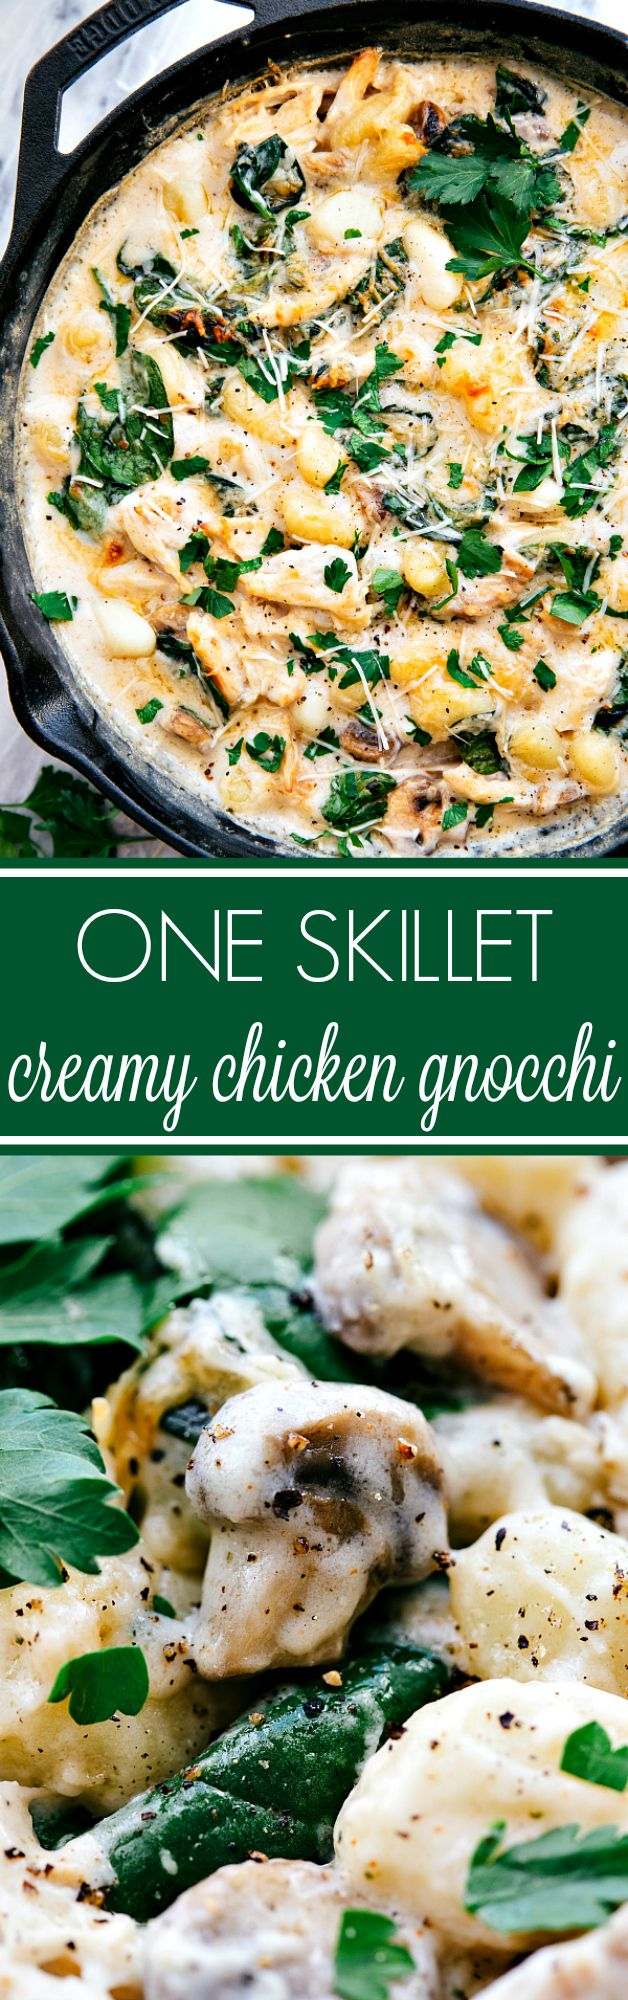 Easy 20 minute prep ONE SKILLET creamy chicken gnocchi. Substitute some ingredients to make Fix friendly